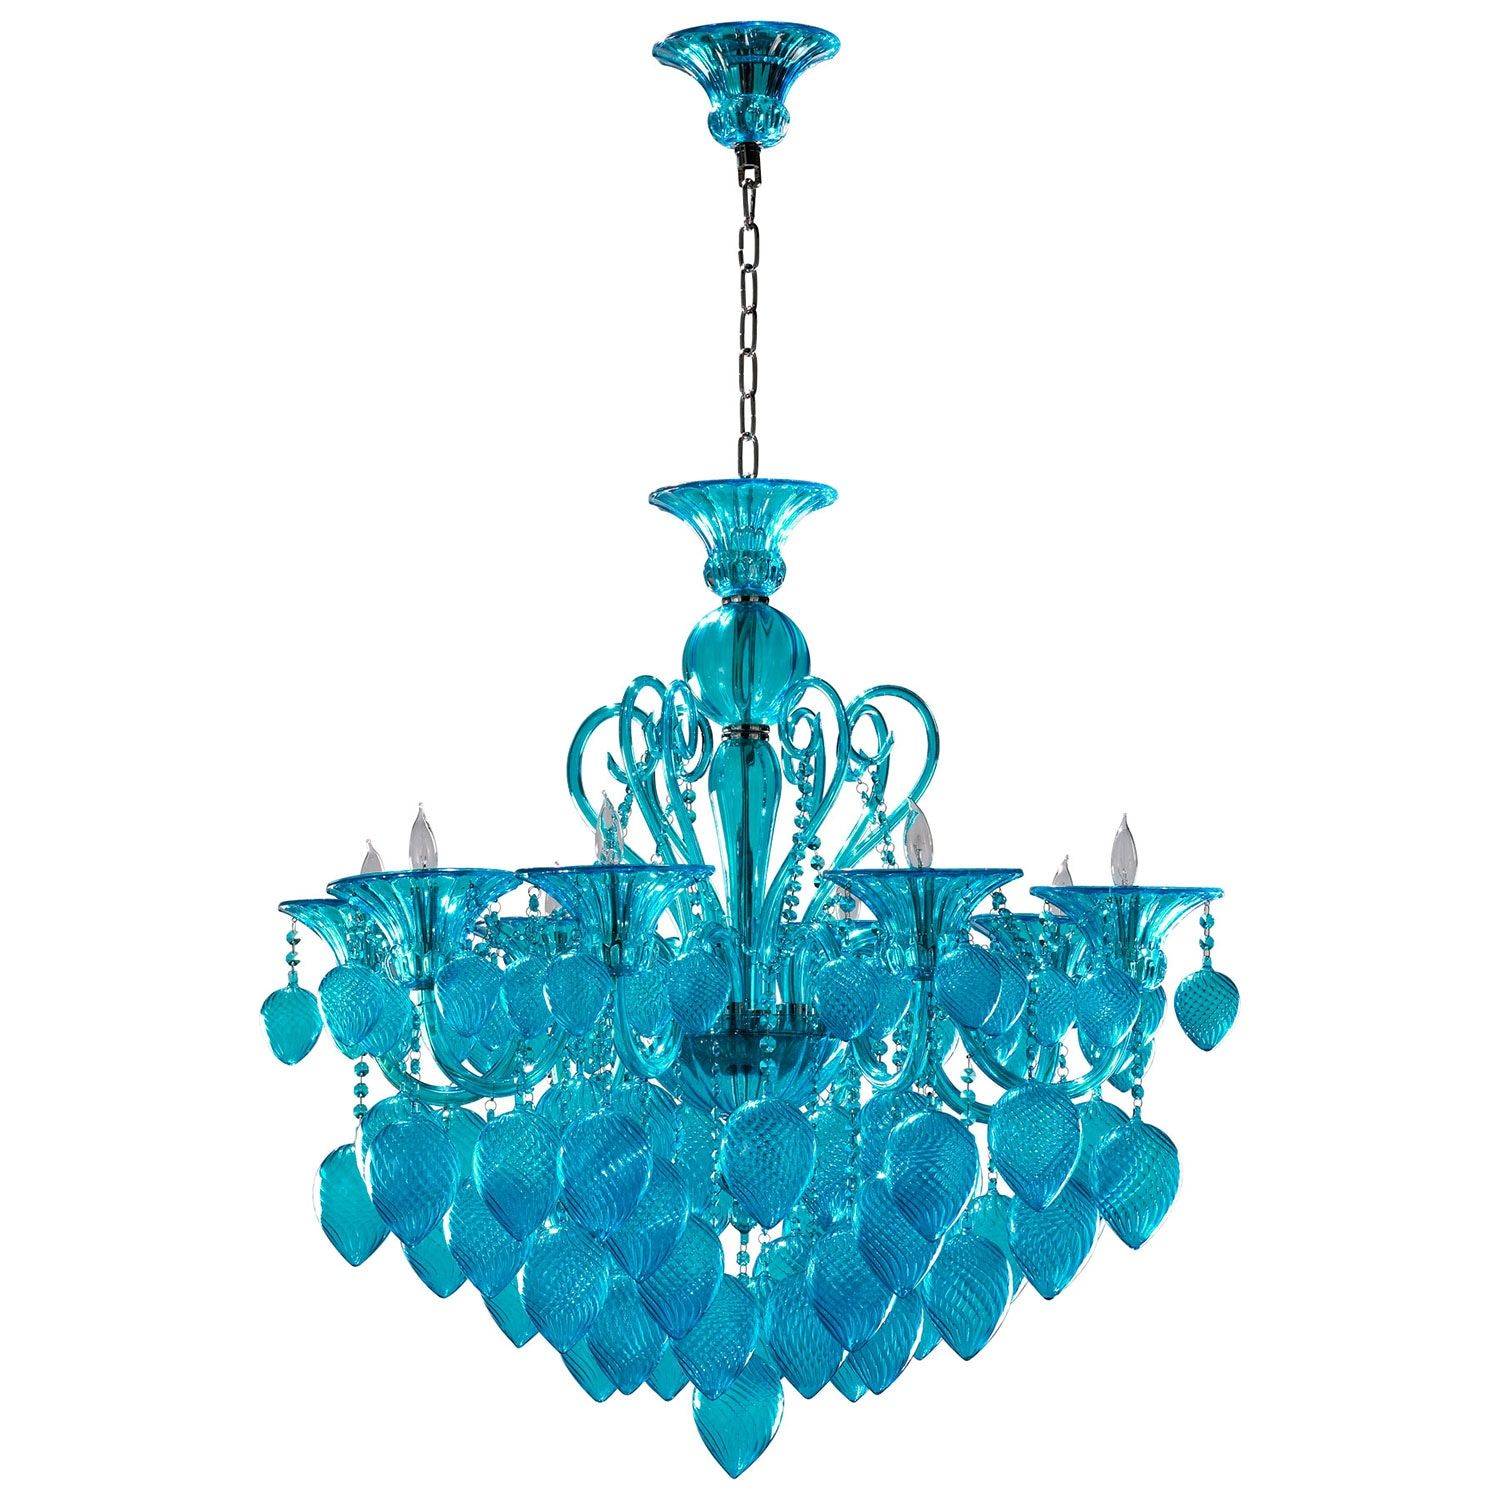 Home Accessories - Bella Vetro Aqua Chandelier